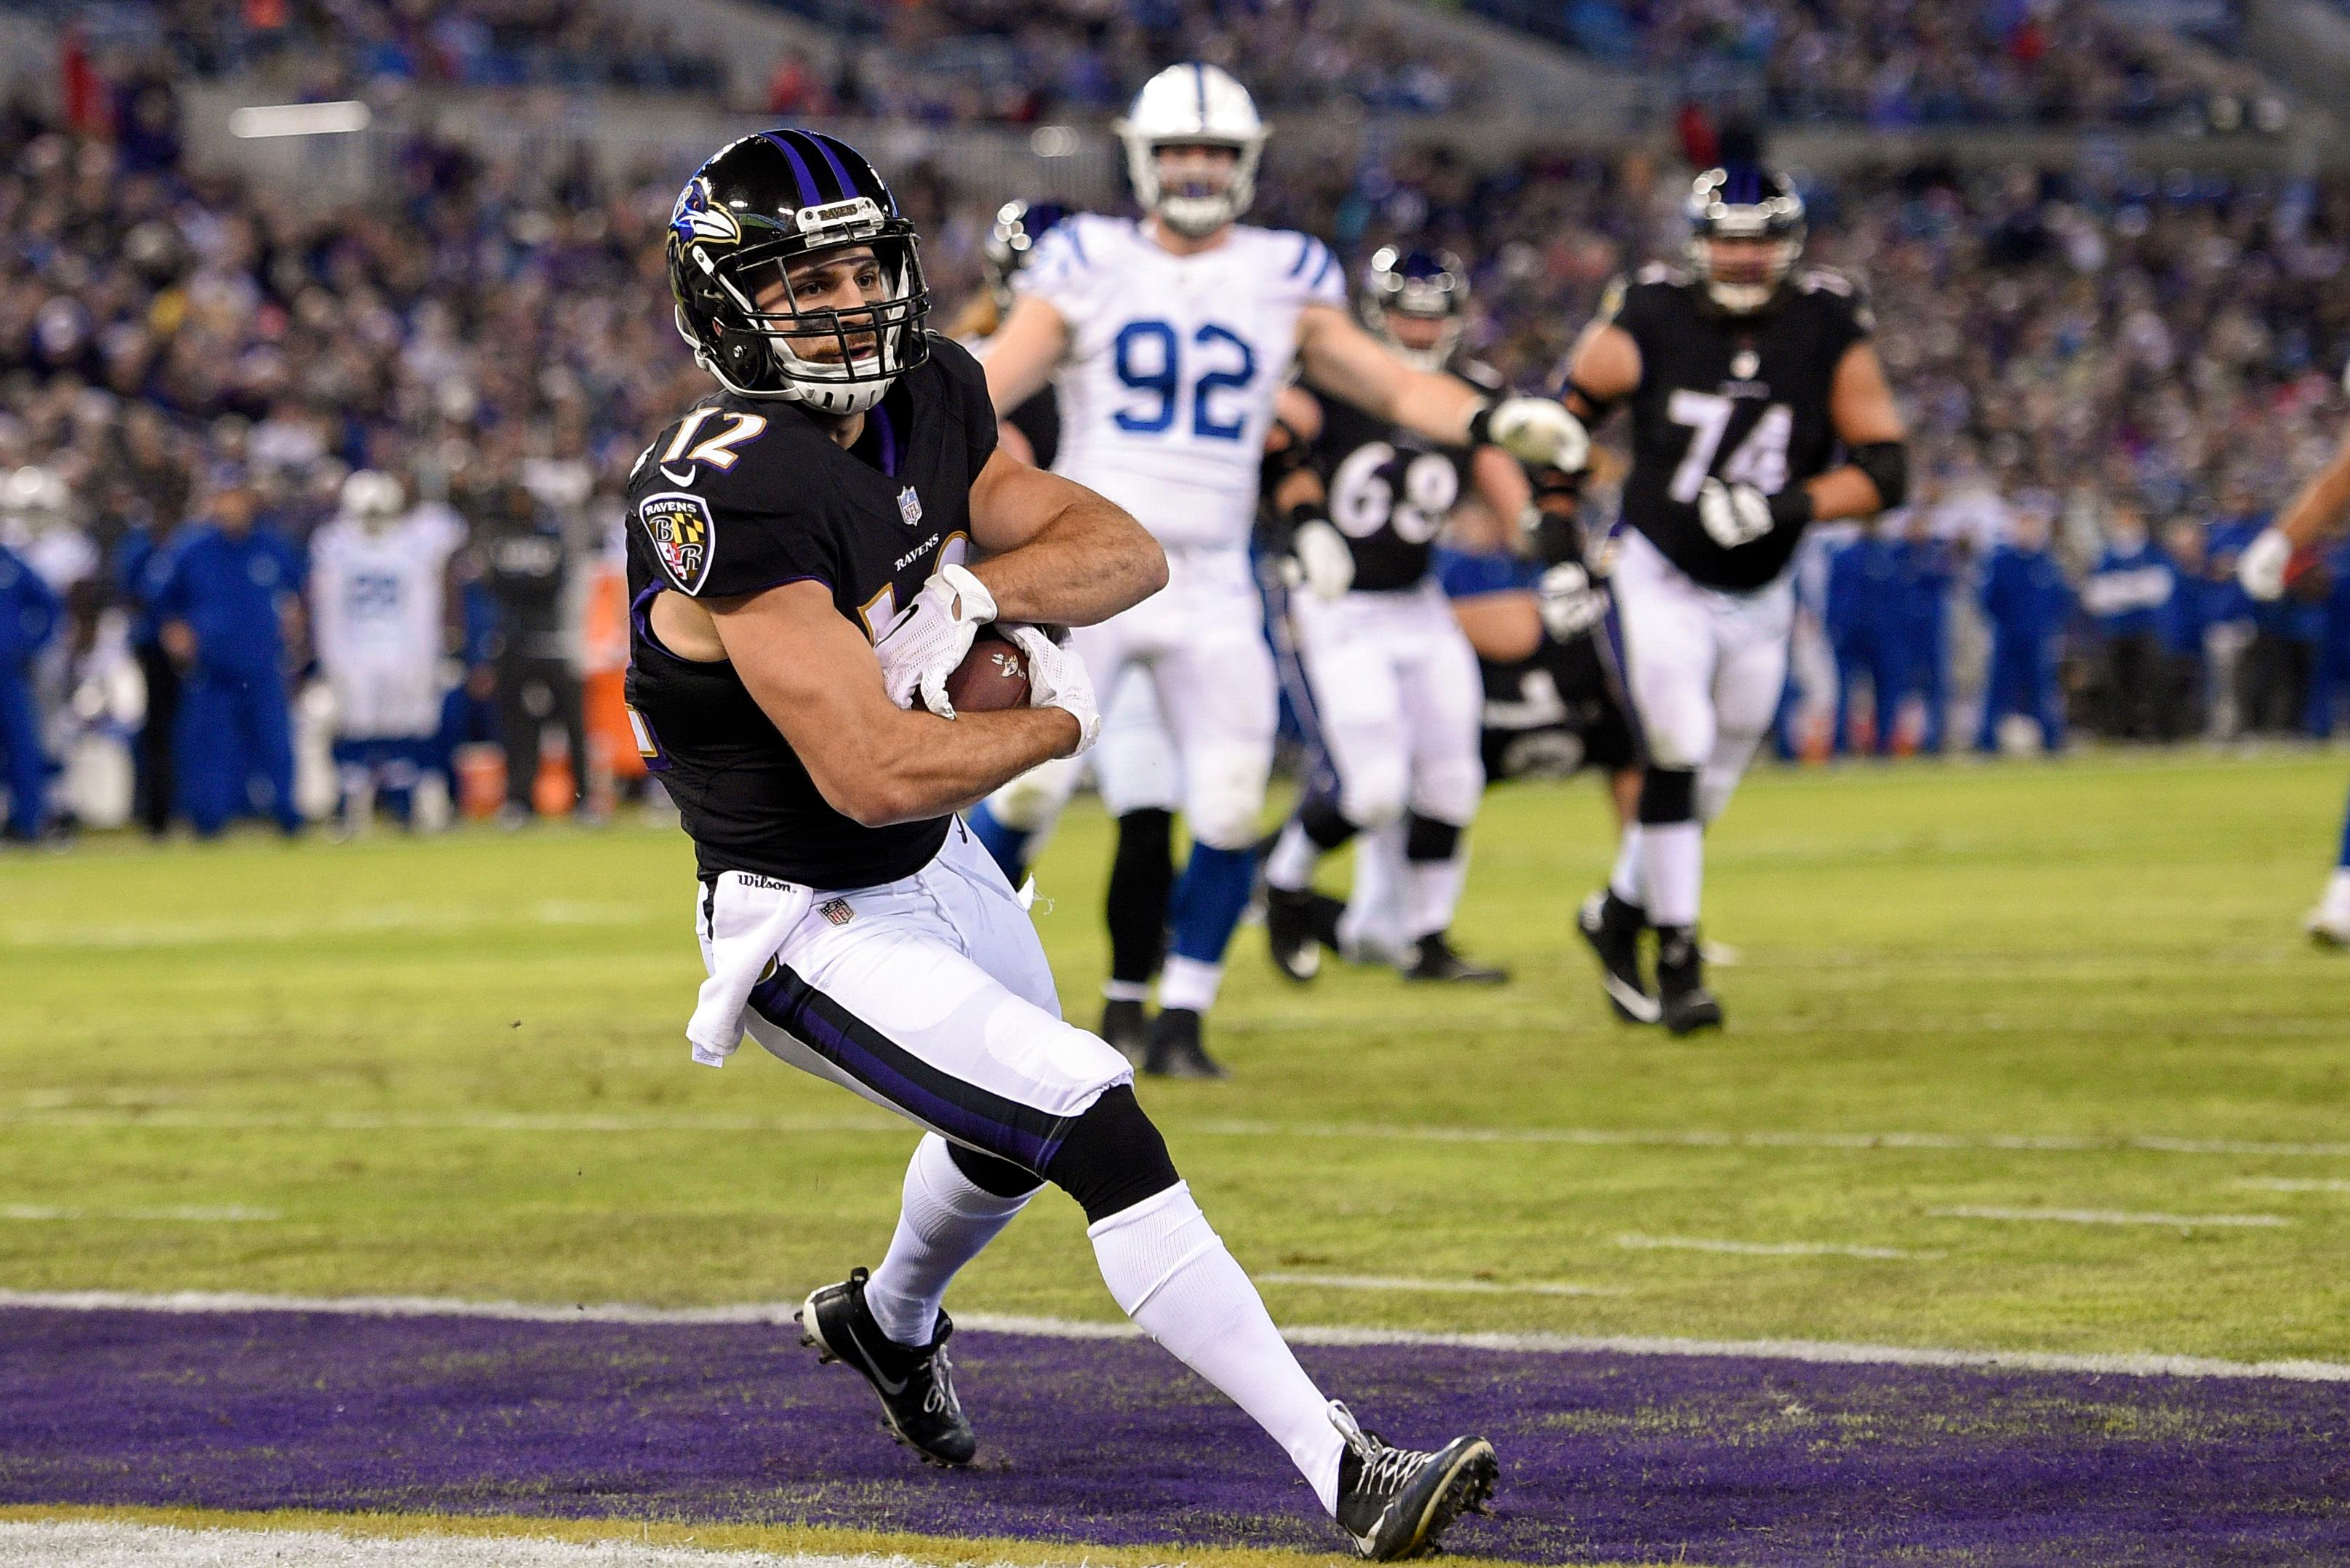 Baltimore Ravens wide receiver Michael Campanaro (12) lands in the end zone for a touchdown on a pass reception during the first half of an NFL football game against Indianapolis Colts in Baltimore, Saturday, Dec 23, 2017. (AP Photo/Nick Wass)